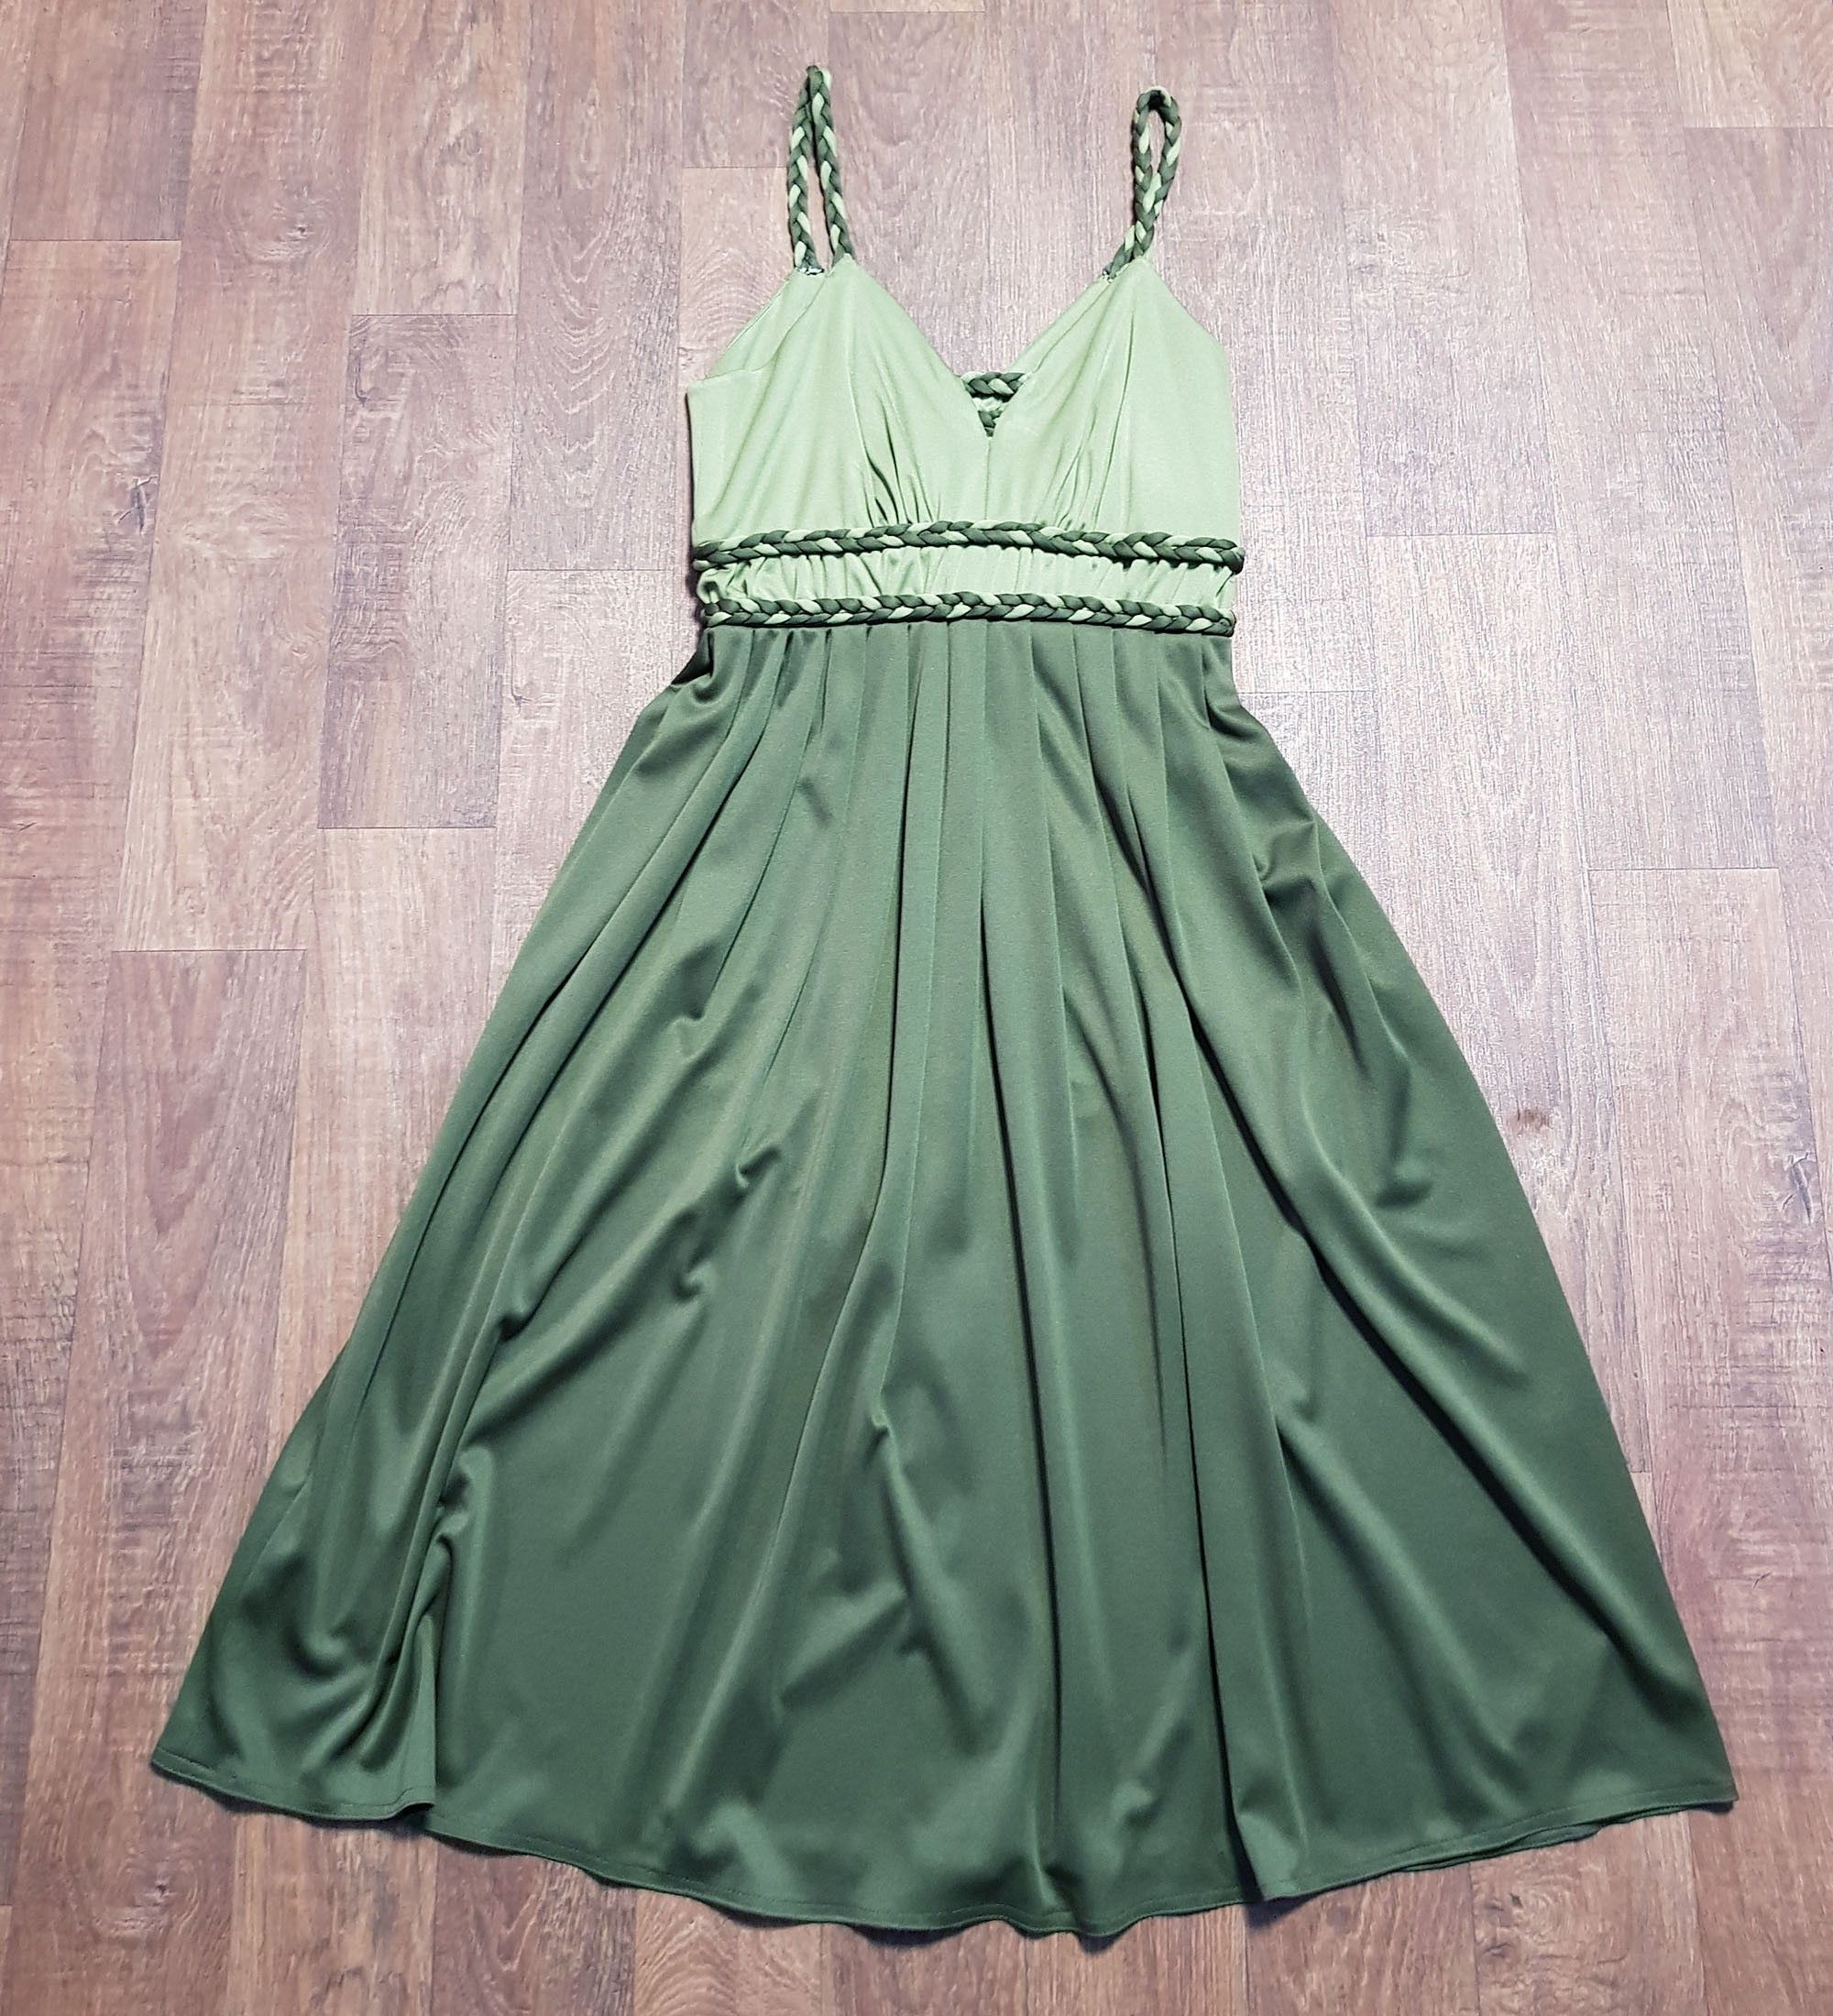 1970s Vintage Olive Green Plaited Evening Dress UK Size 10